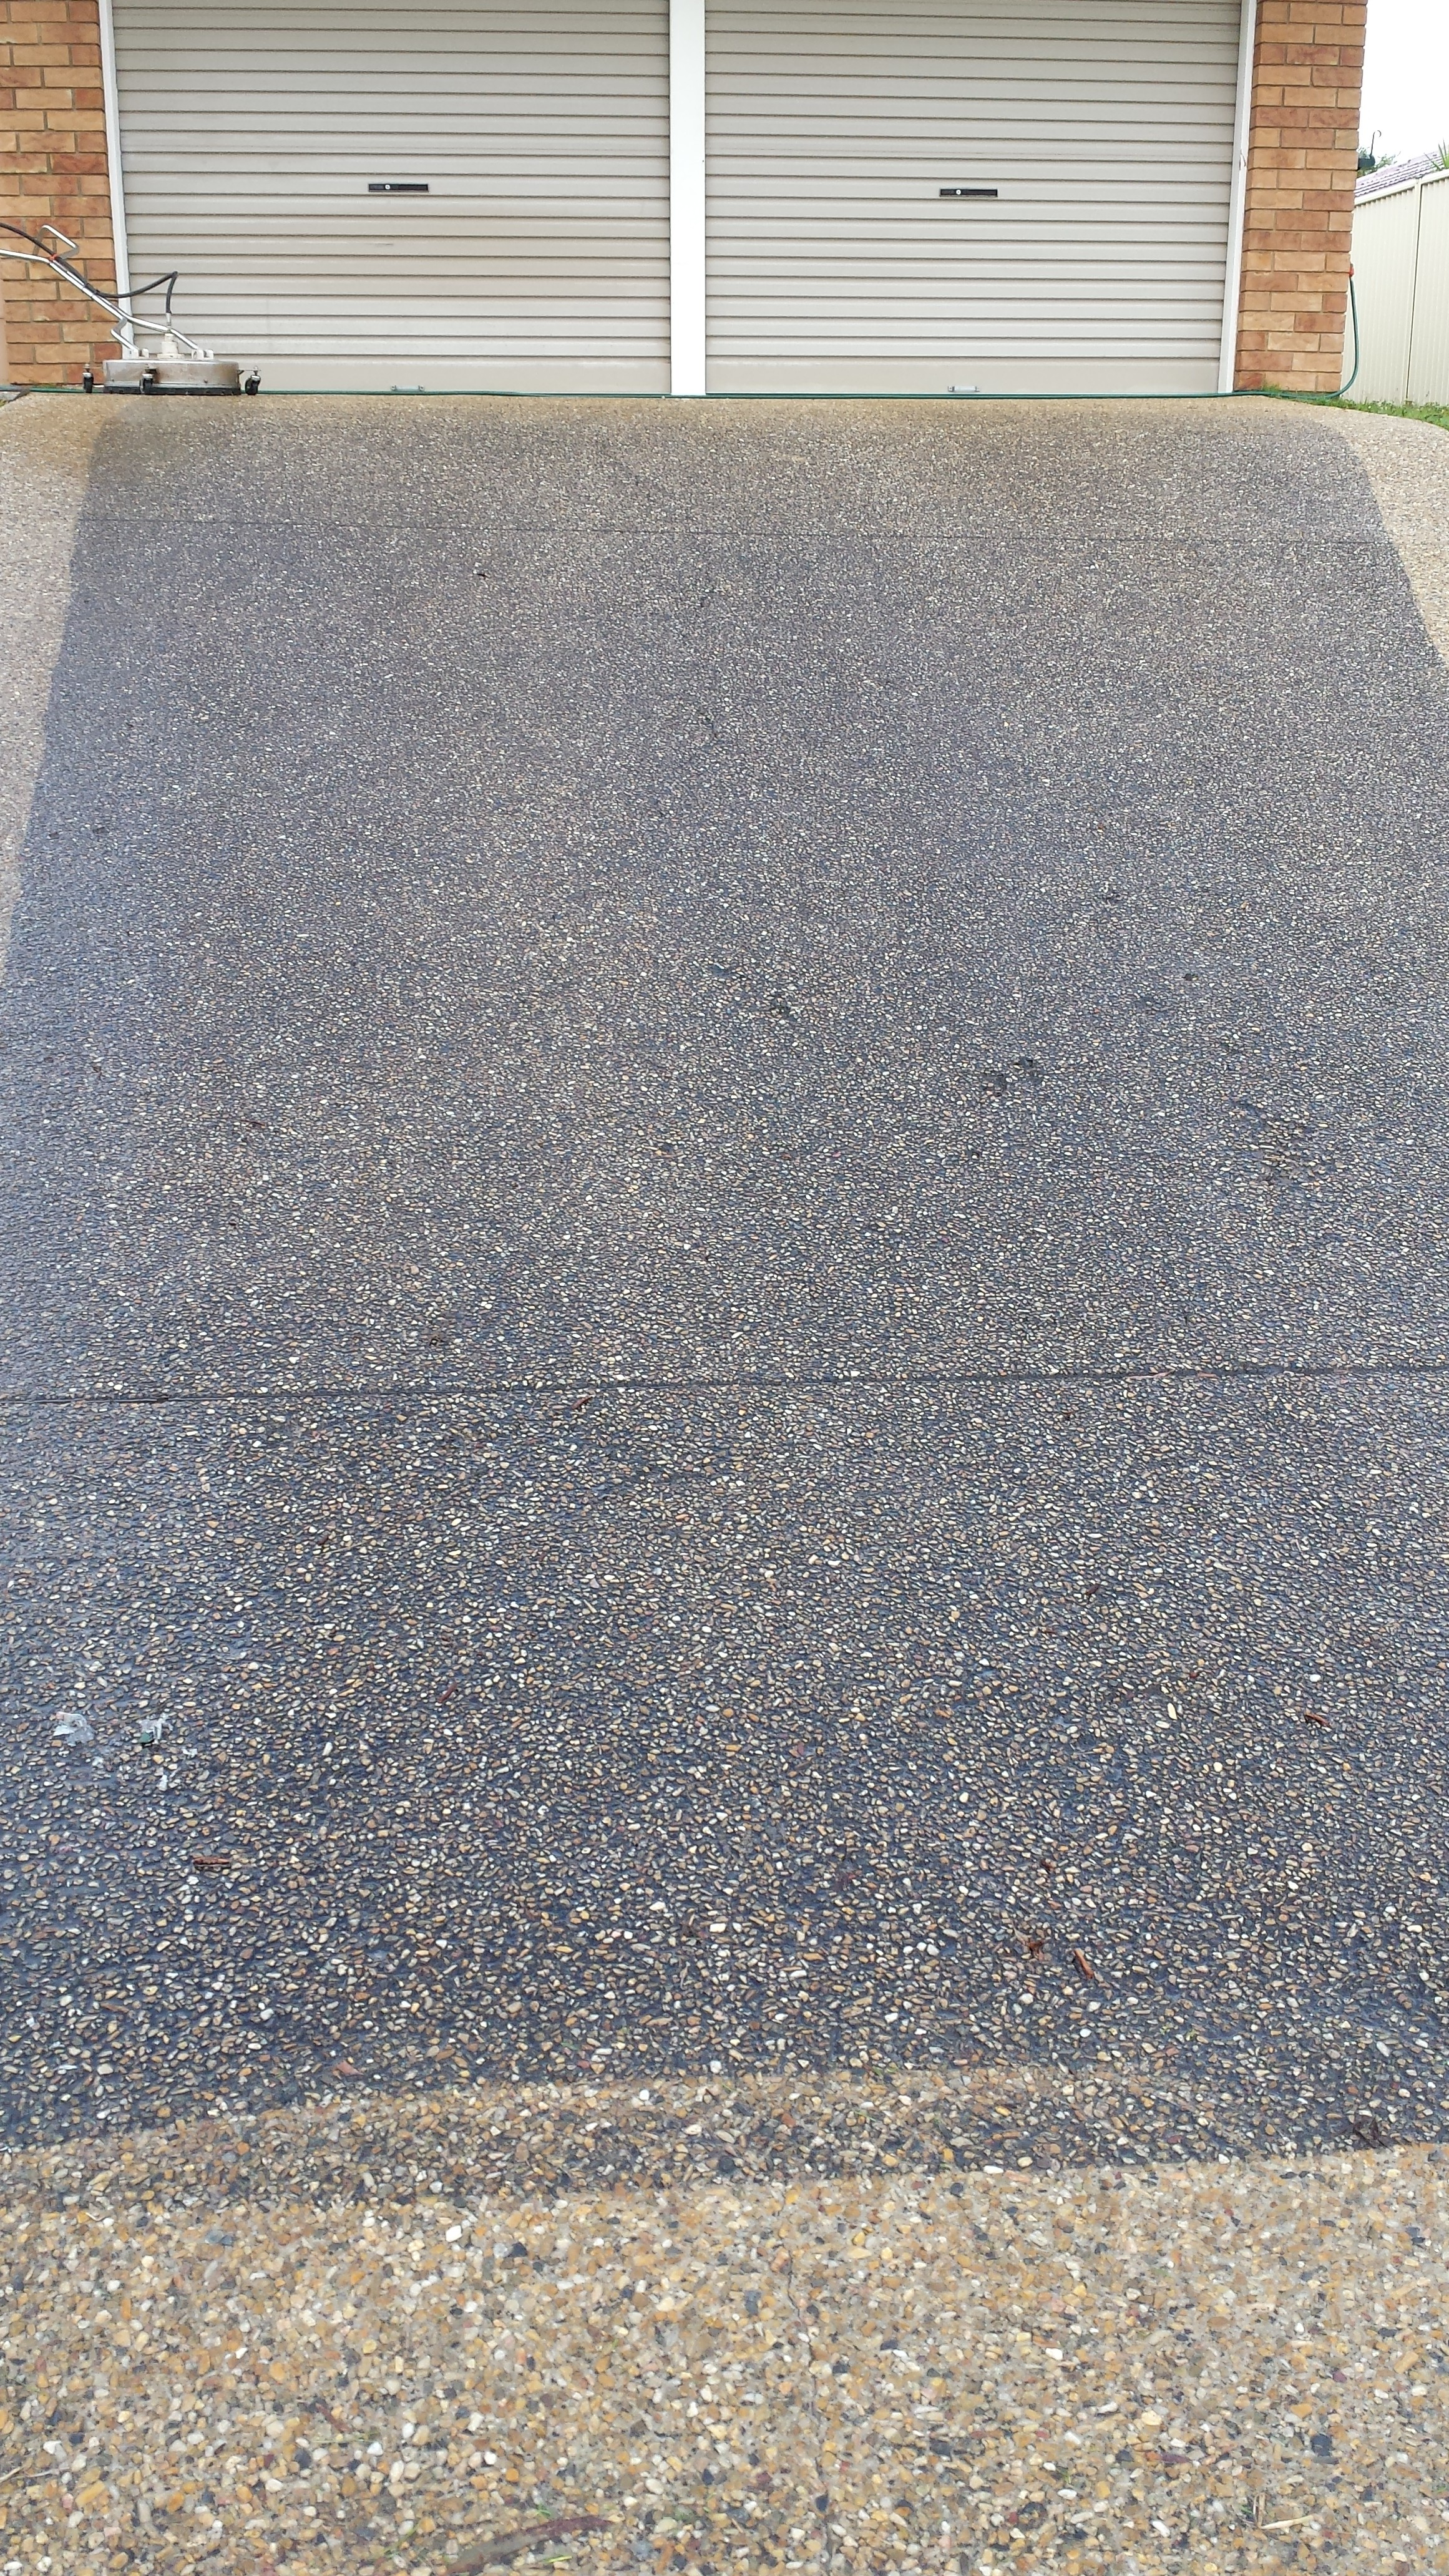 Home driveway cleaning services